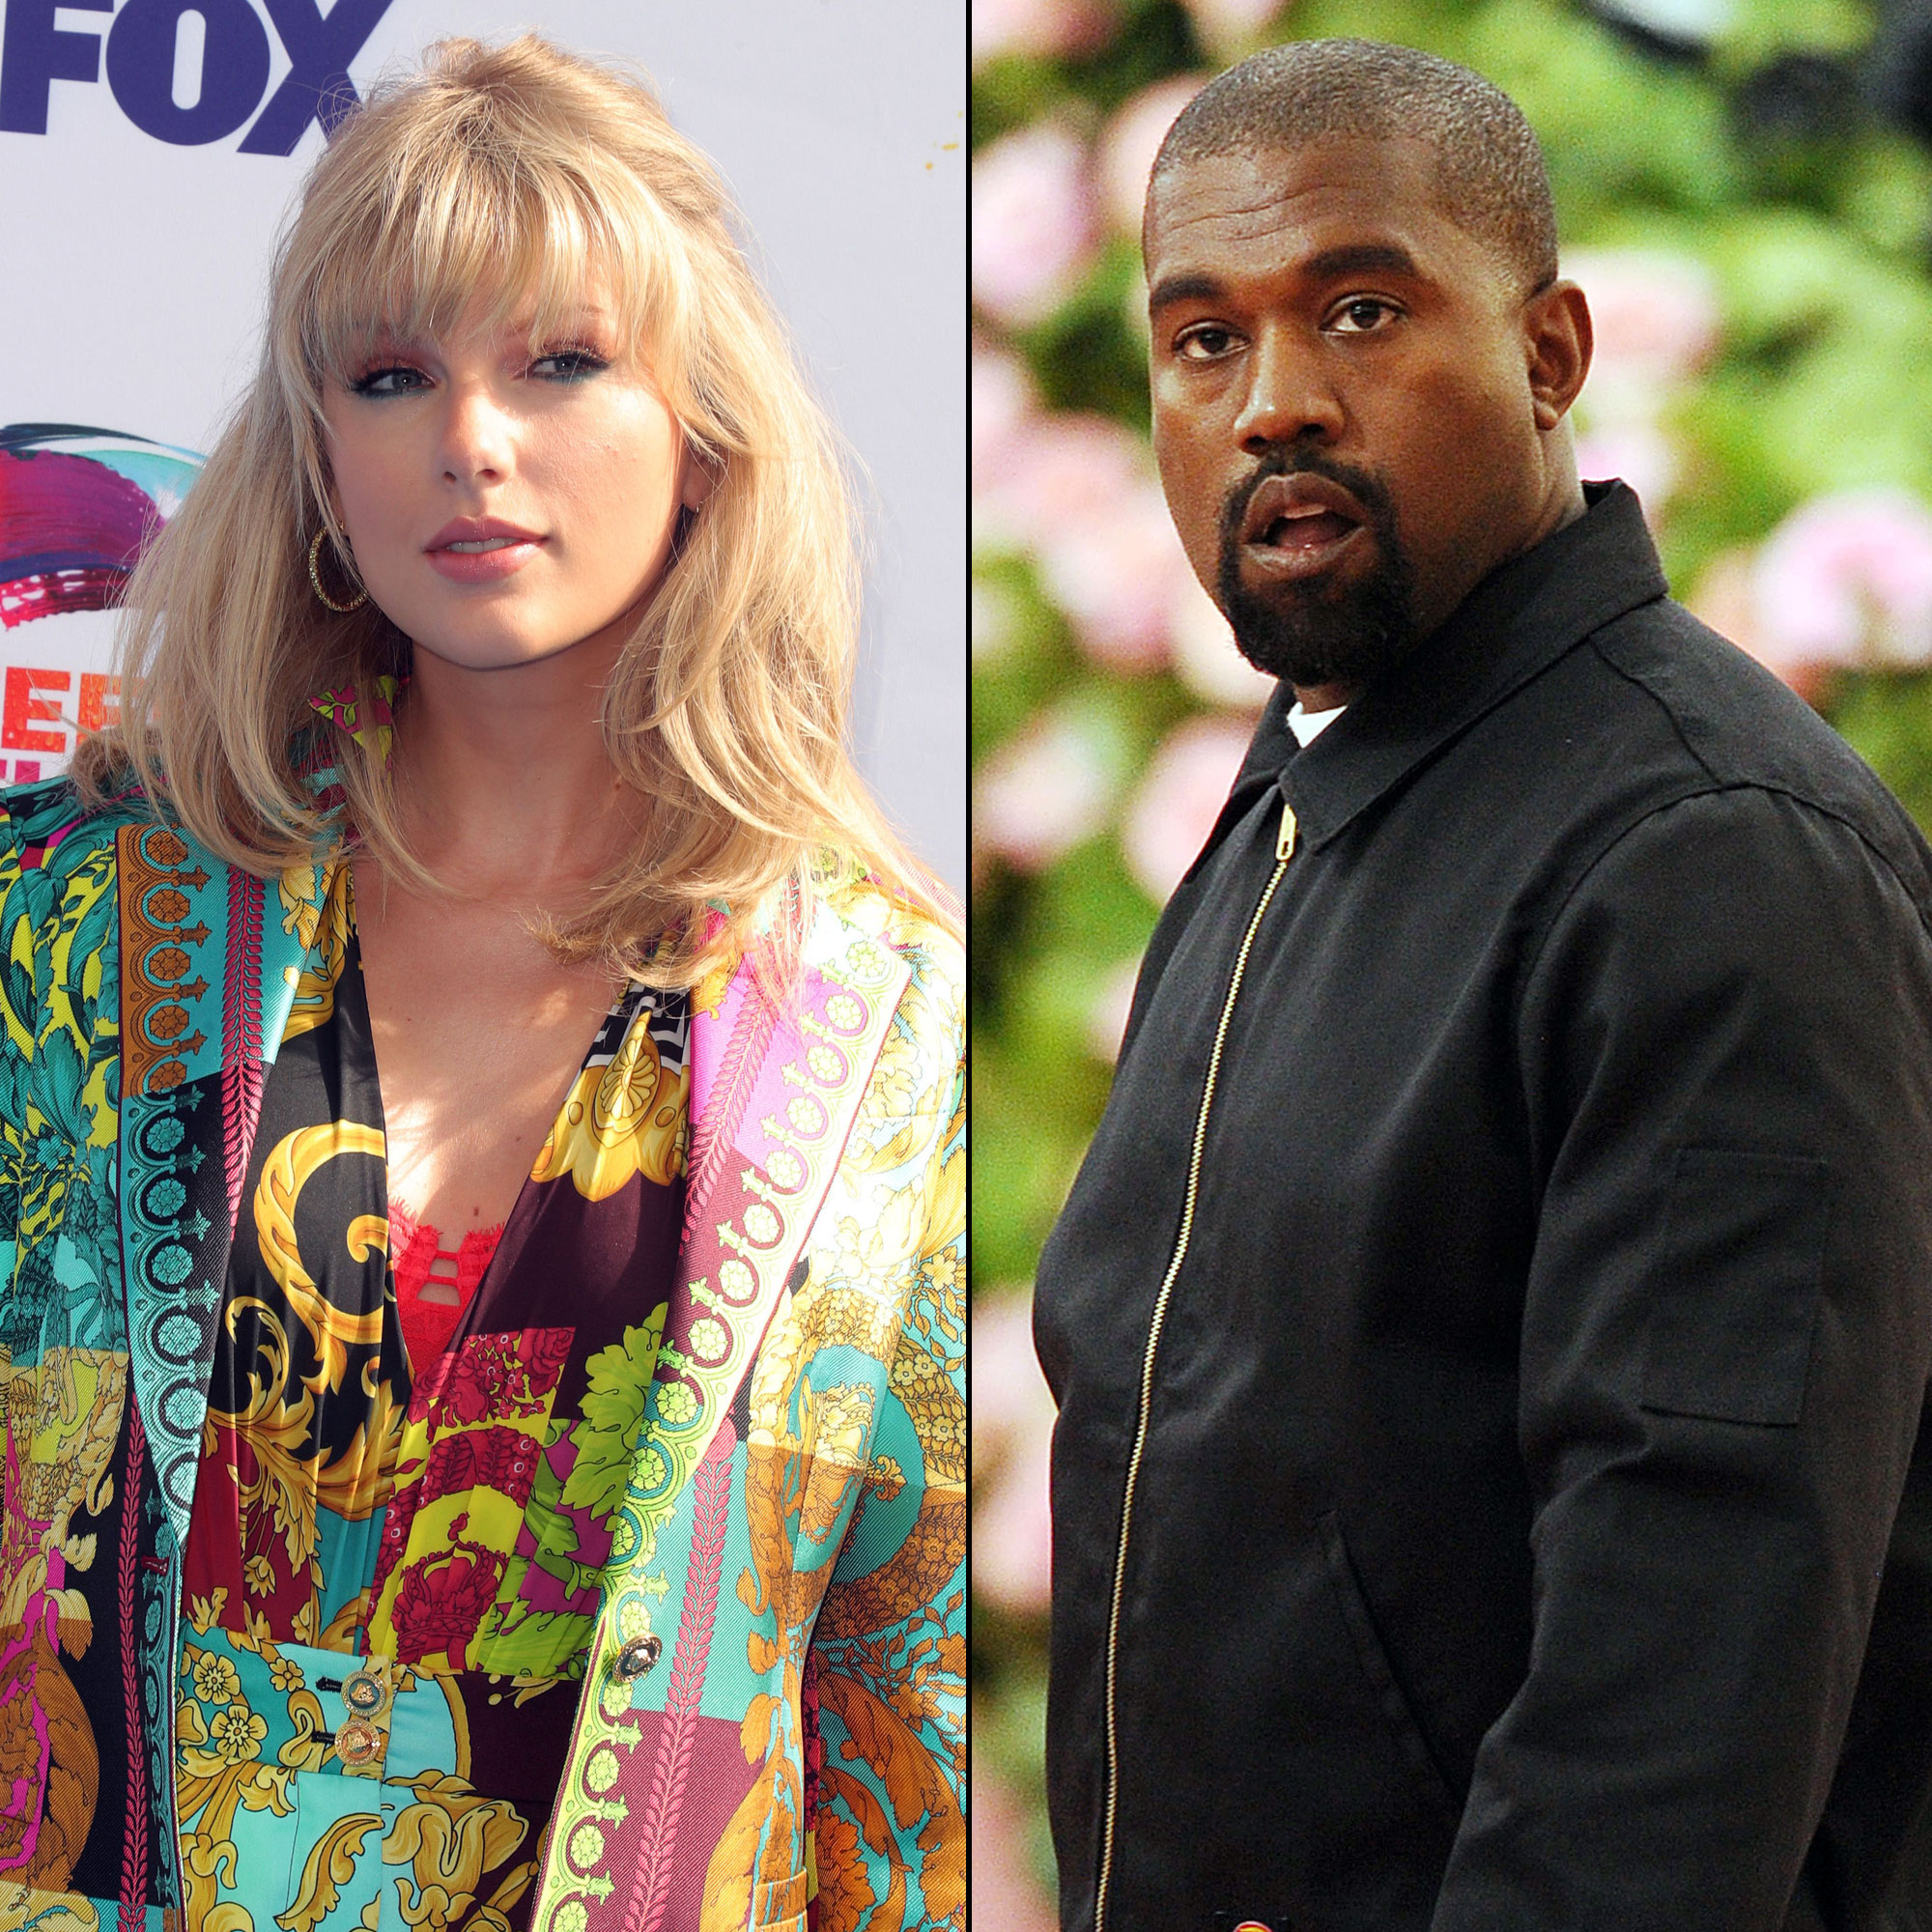 Taylor Swift Wrote About Kanye Crashing VMAs Stage in 2009 Diary Entry - Taylor Swift and Kanye West